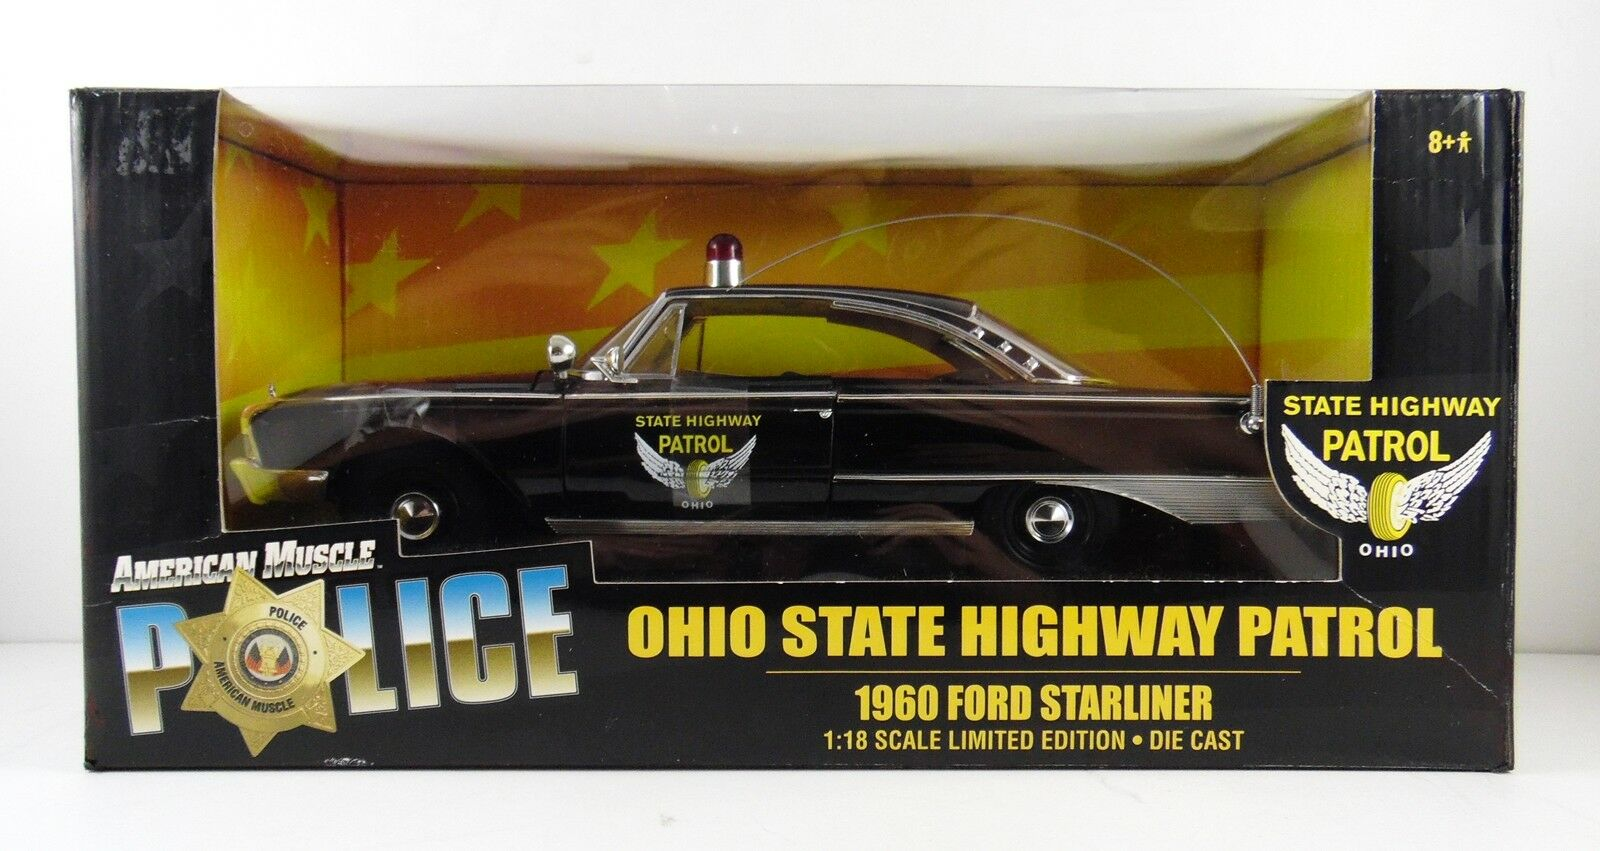 1960 Ford vaisseau Ohio State Highway Patrol 1 18 Scale